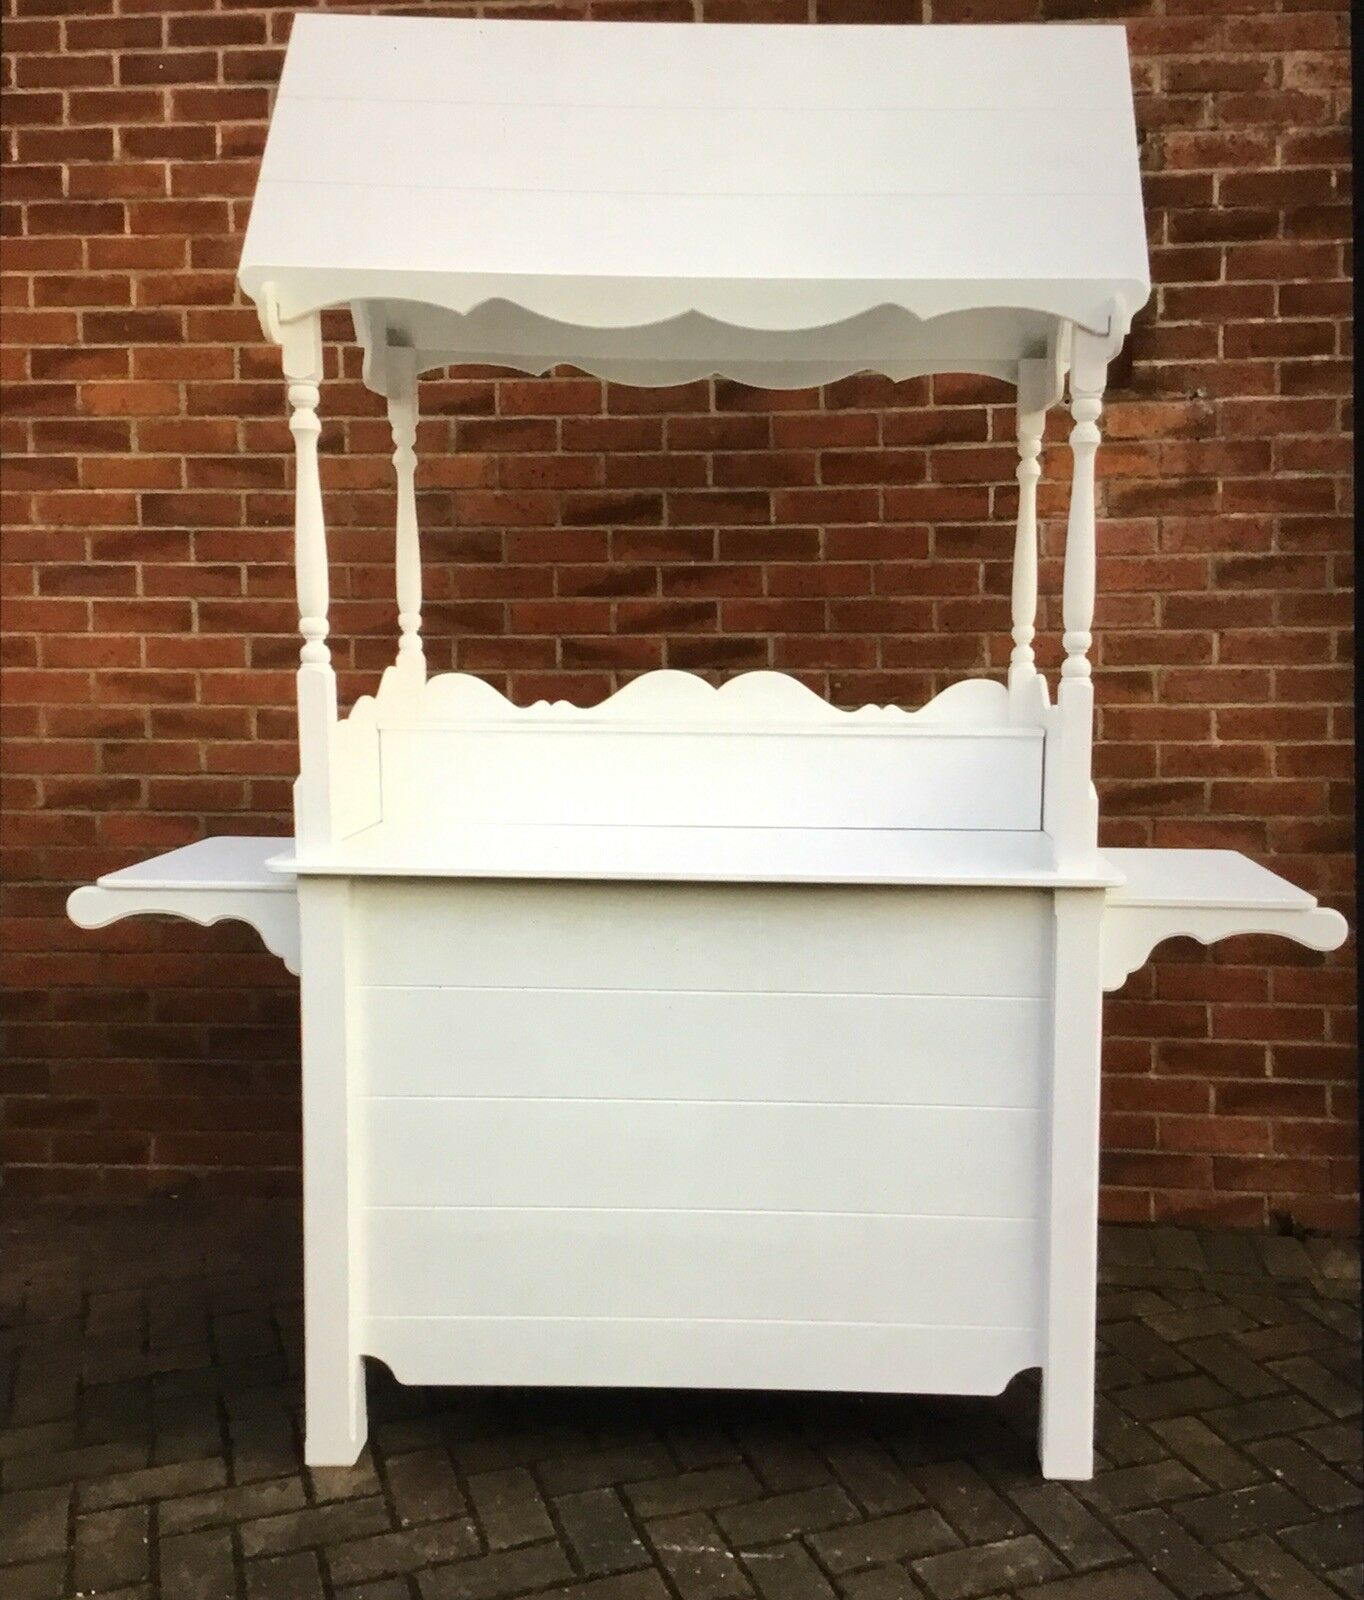 CANDY Panier Armoire Sweet Shop Display Stand Armoire stand de marché Handmade carts